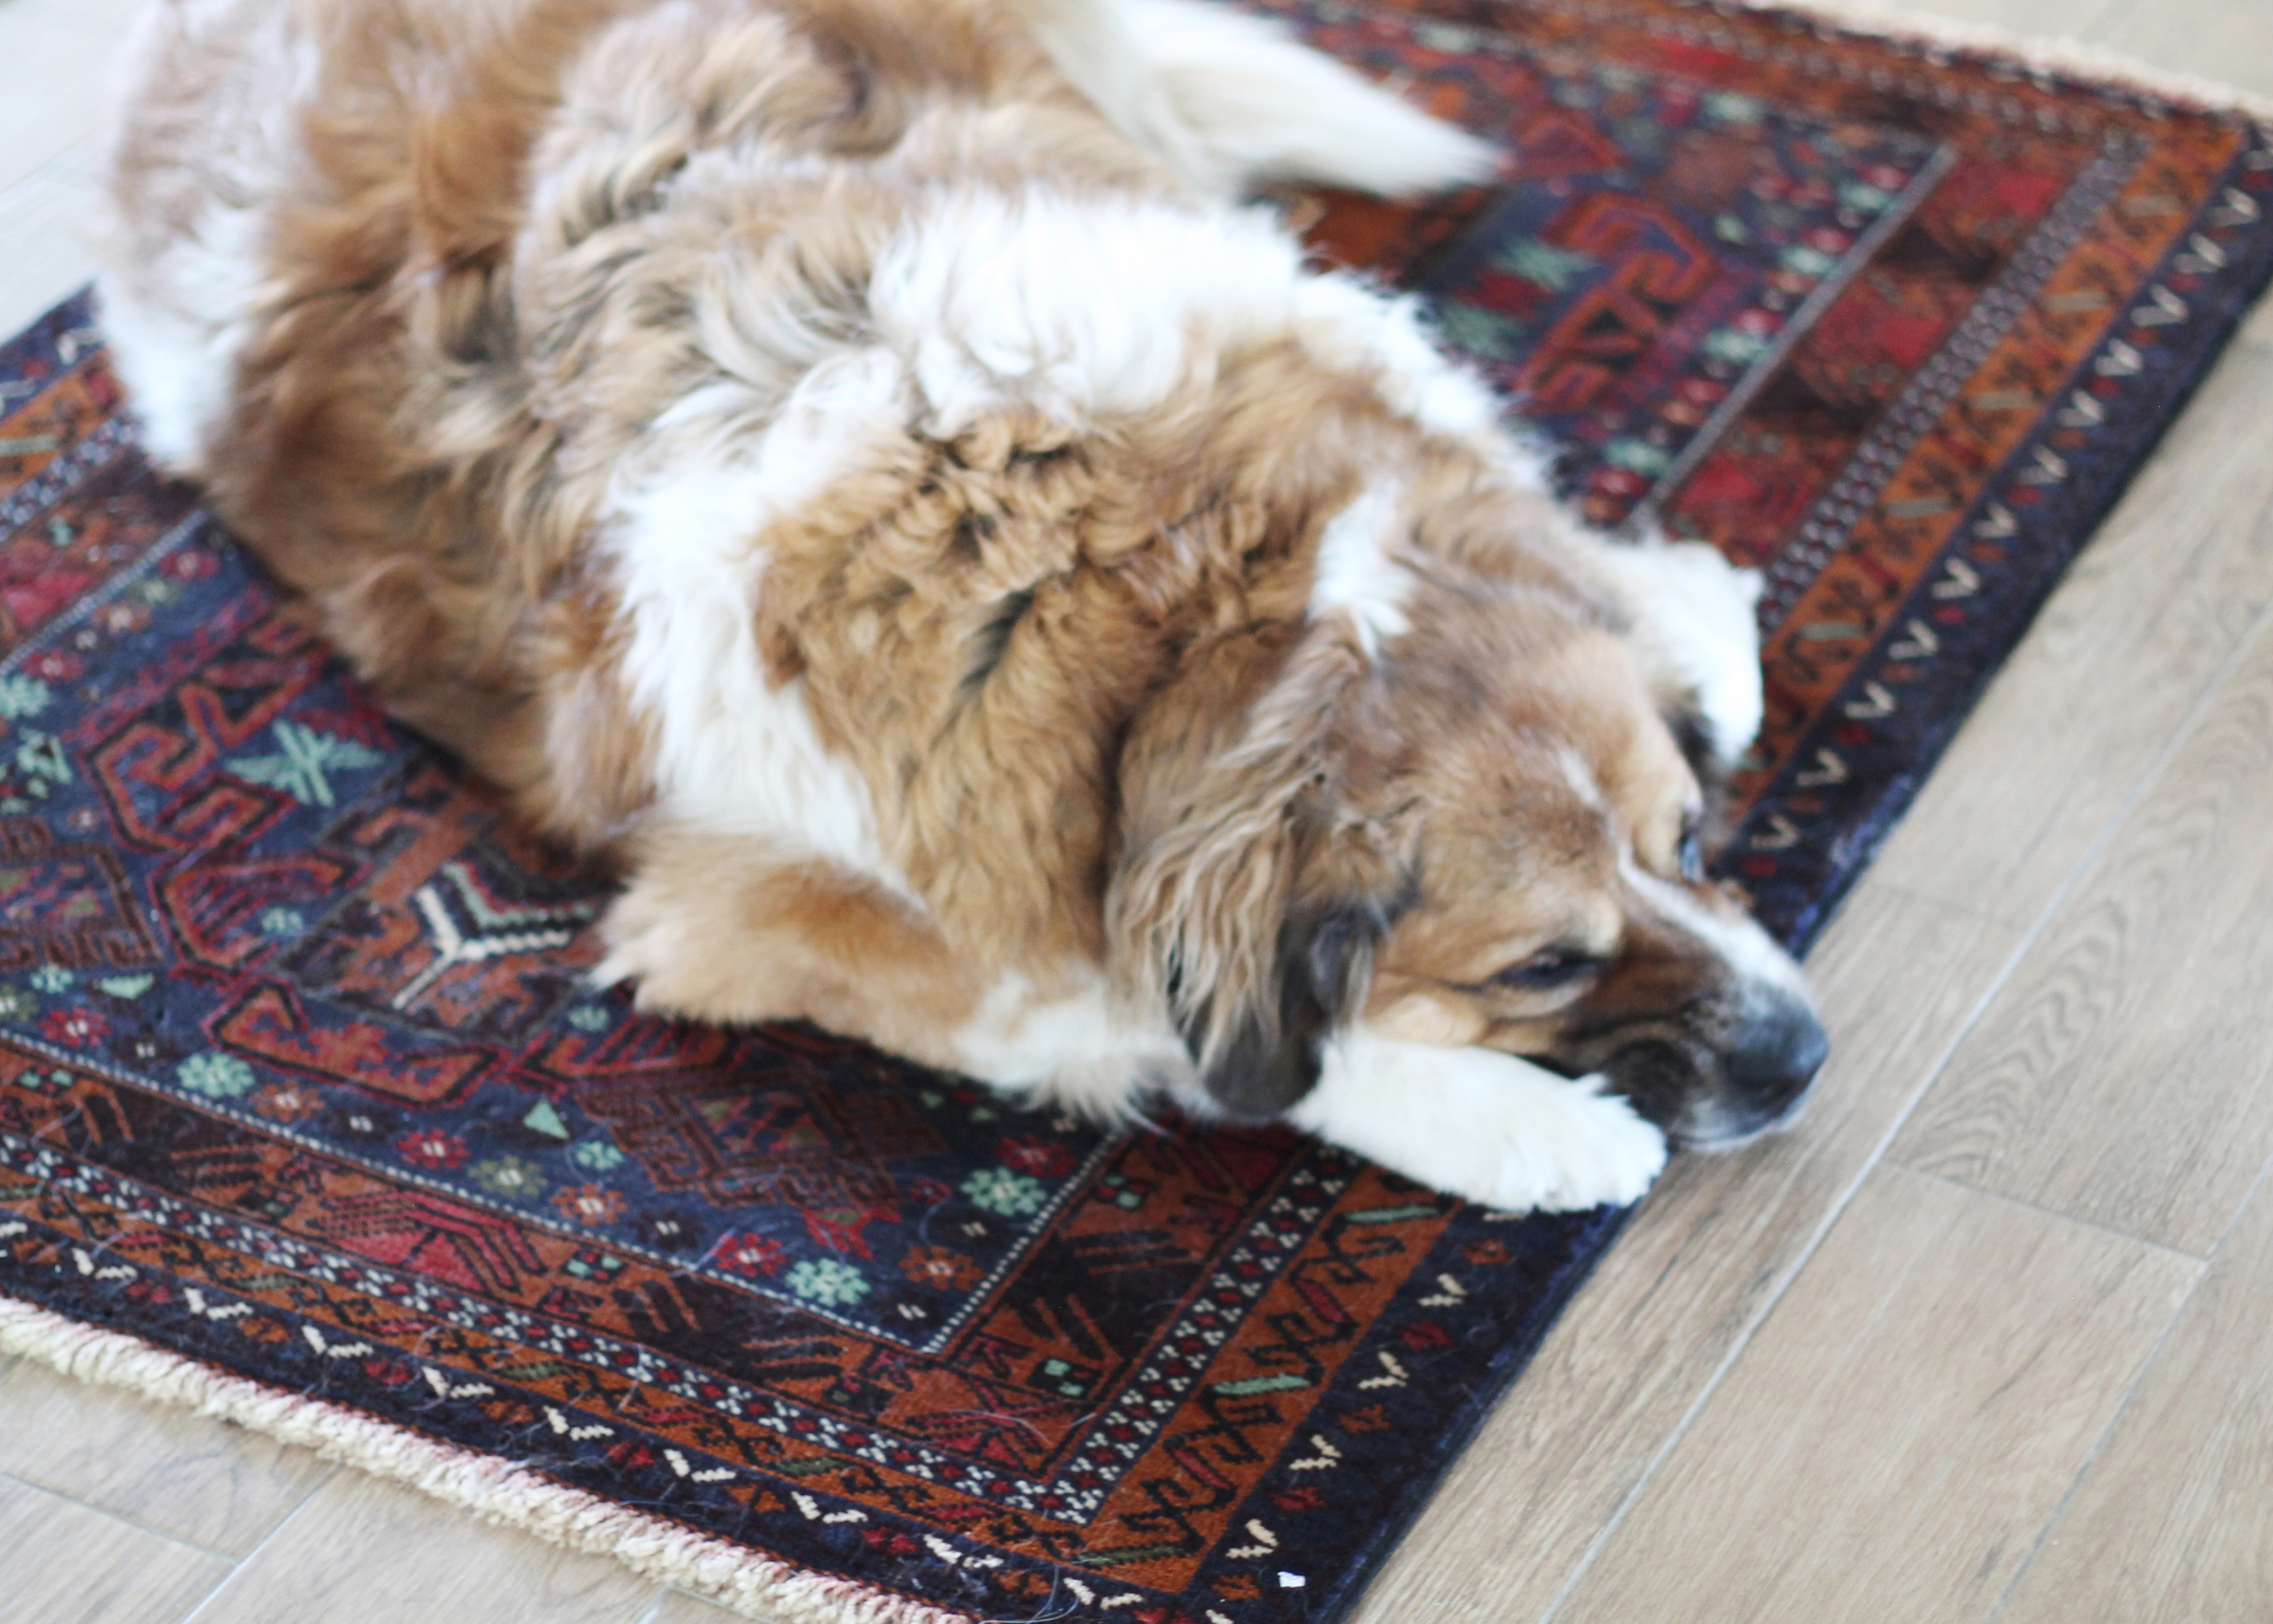 get dogs how for labrador rugs hair carpet dog furniture health care and out to of best rug